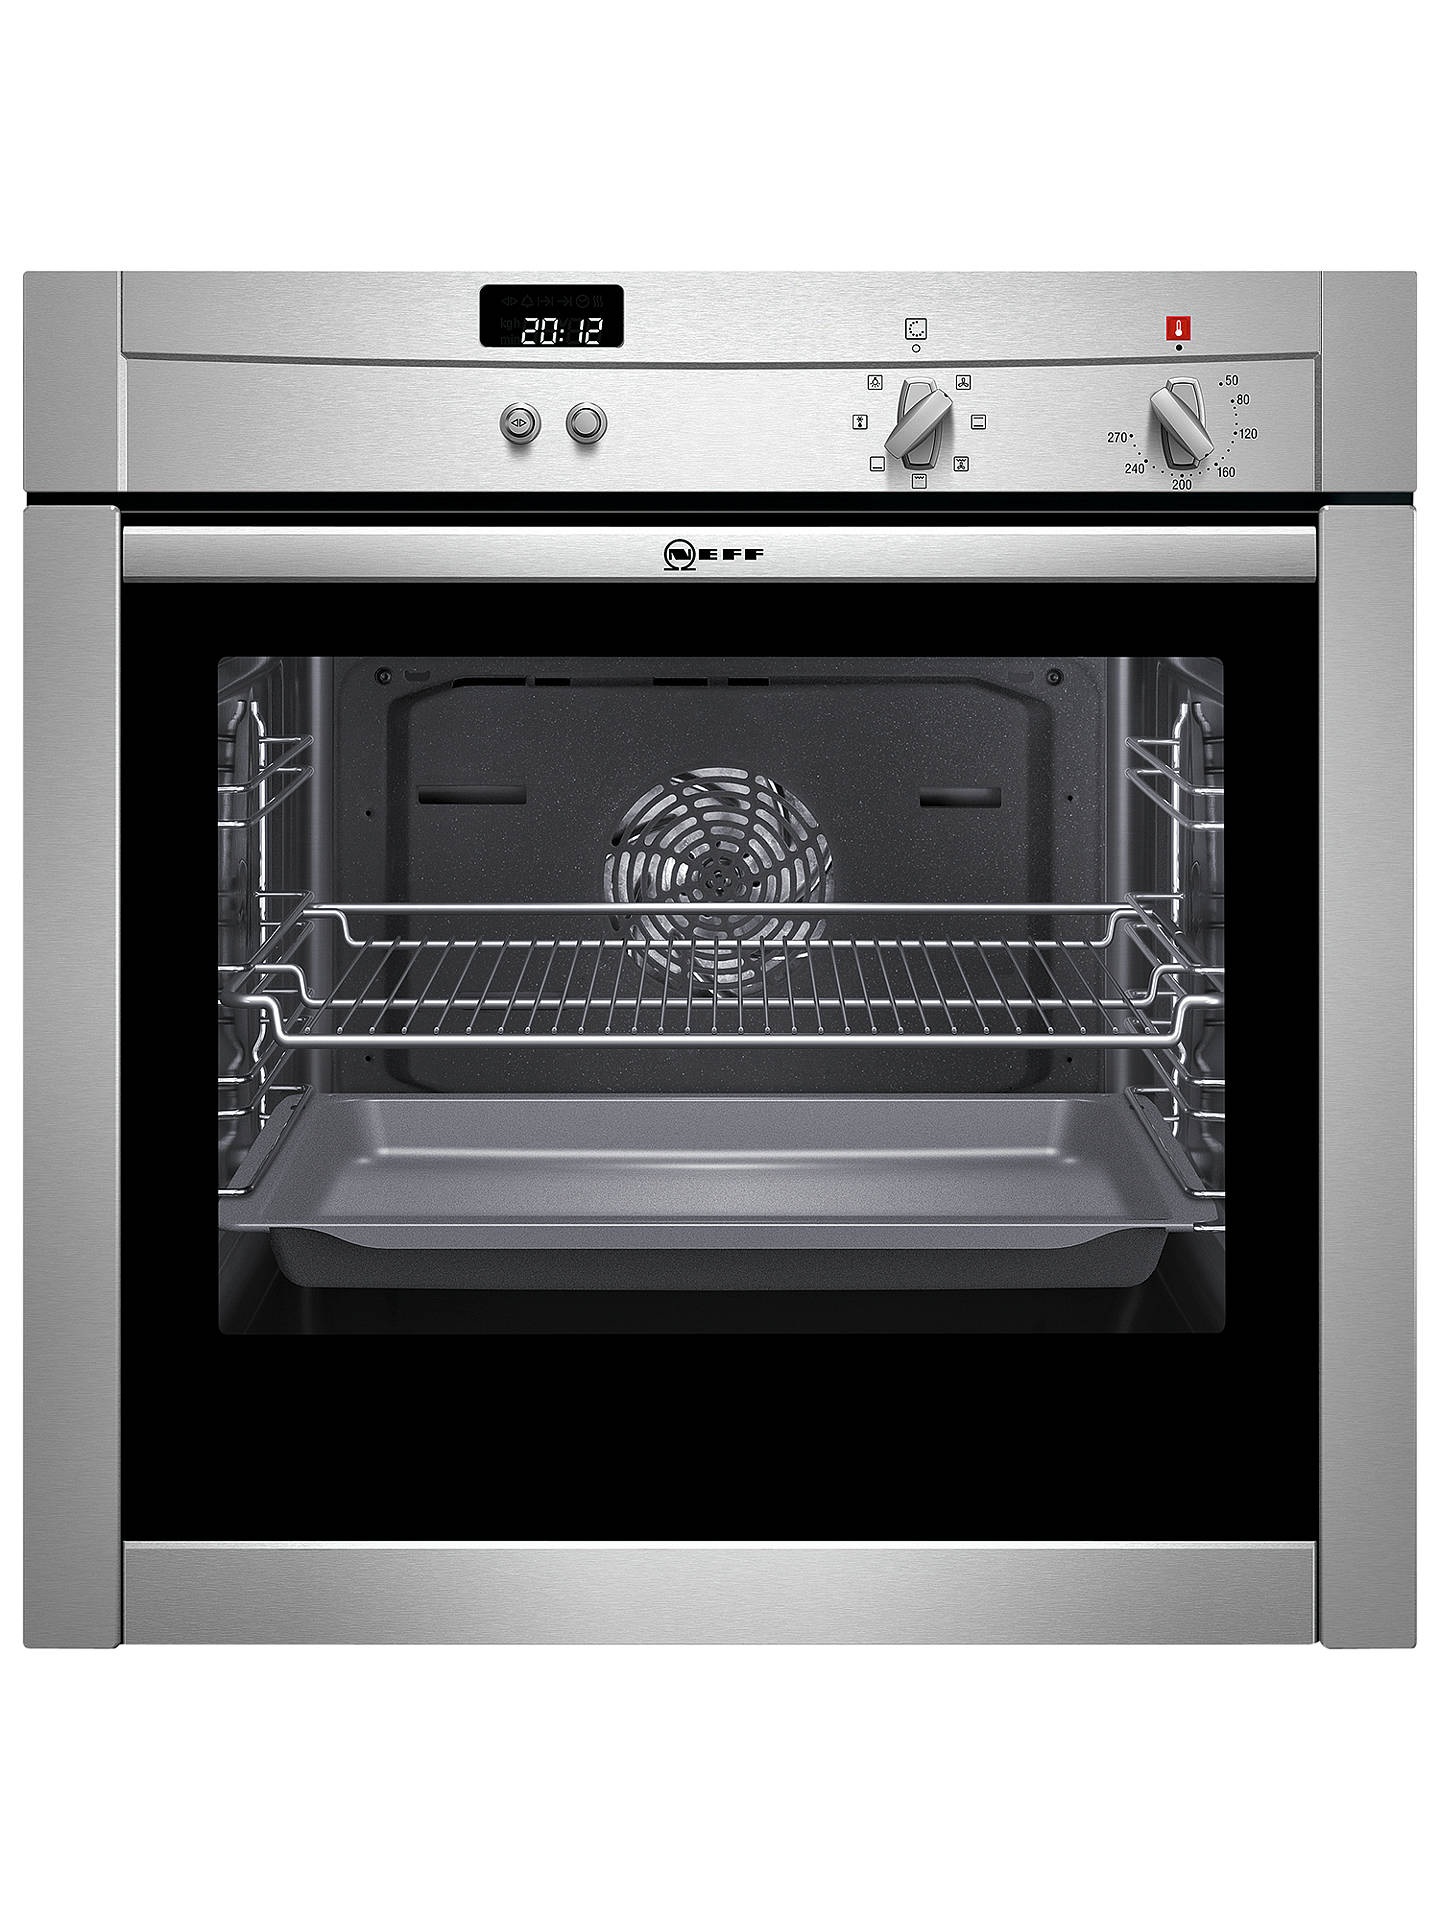 Neff Wiring Instructions The Structural Diagram Hob B44m42n3gb Slide And Hide Single Electric Oven Stainless Steel Rh Johnlewis Com Wire Money Induction